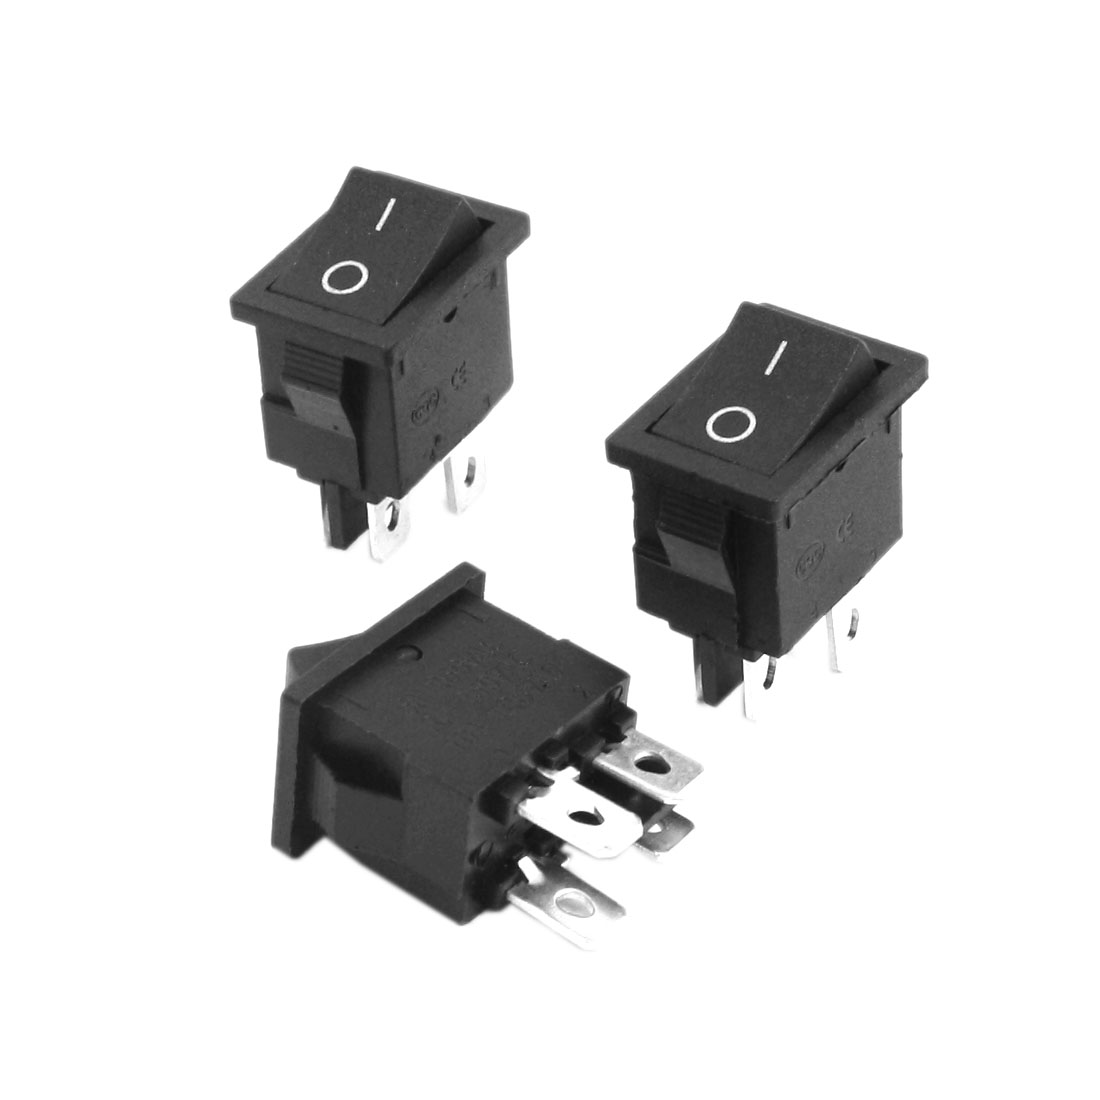 3Pcs DPST 2 Position ON/OFF 4 Soldering Pin Boat Rocker Switch AC250V 5/8A 125V/10A